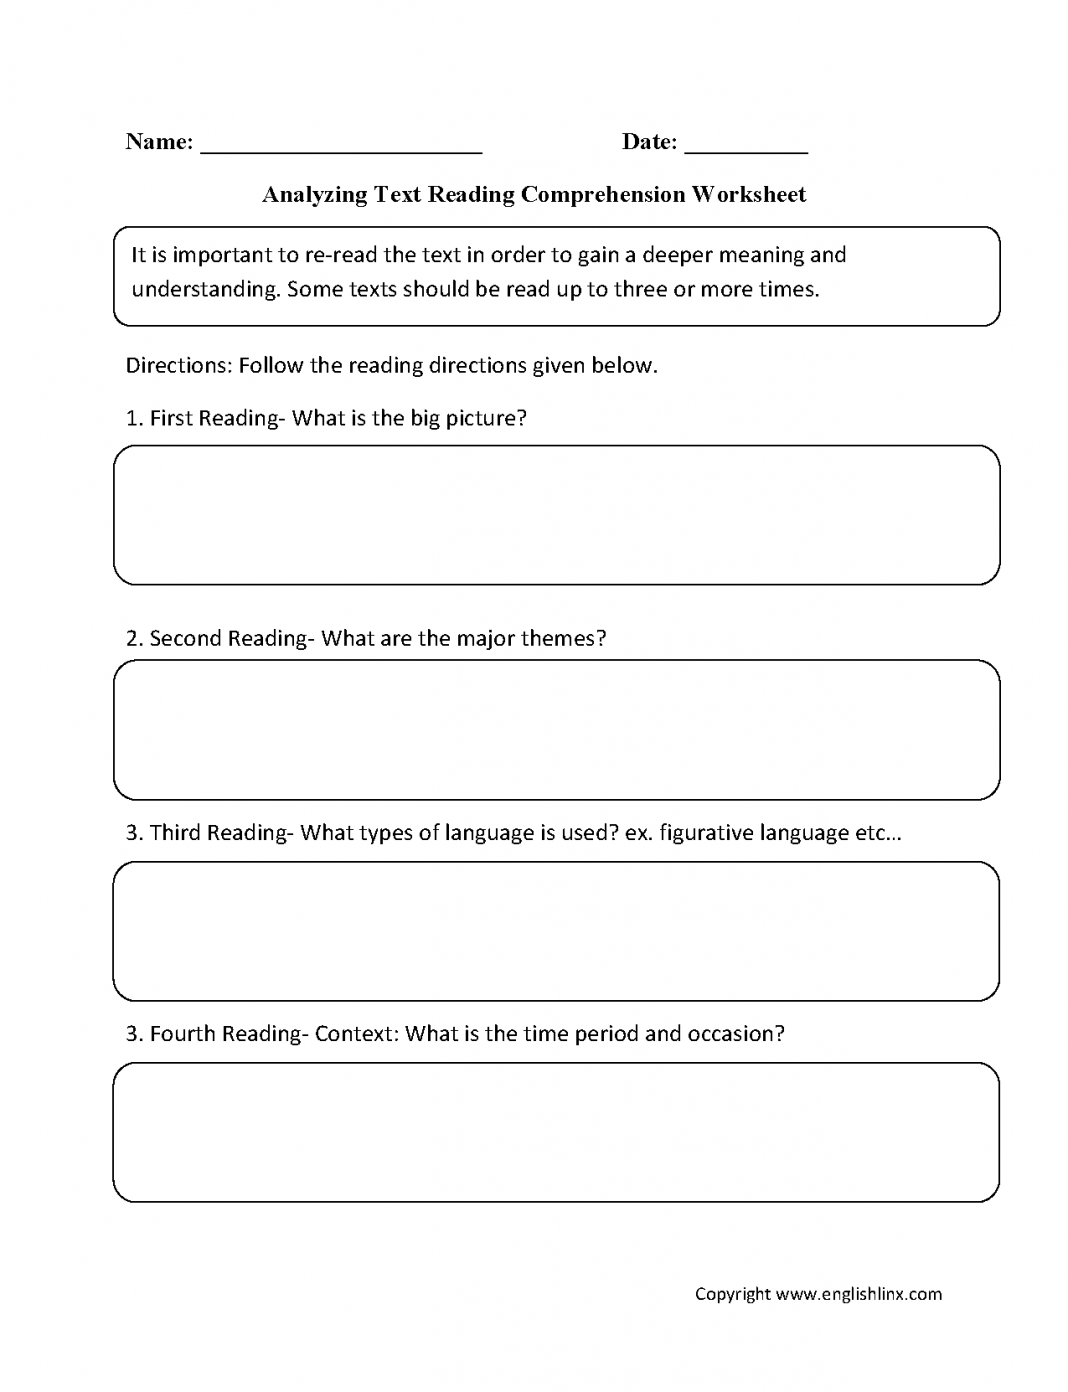 Reading Comprehension Worksheetsyzing Text Reading